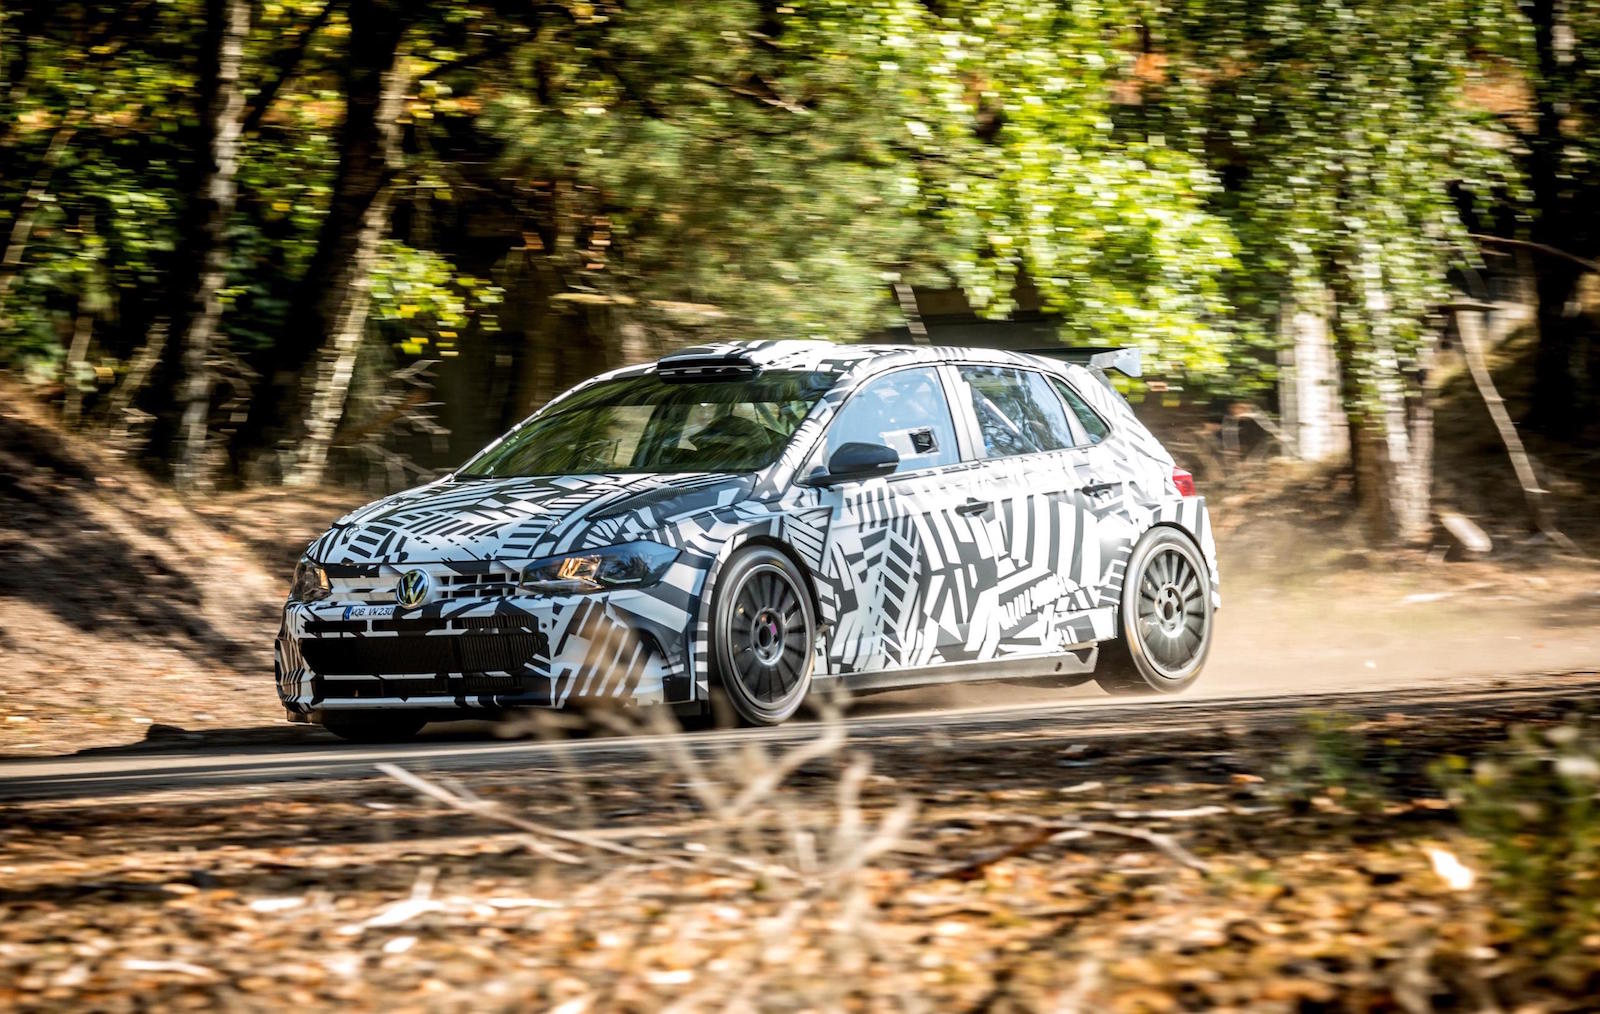 2019 Volkswagen Polo Gti R5 Rally Car Available To Order Performancedrive